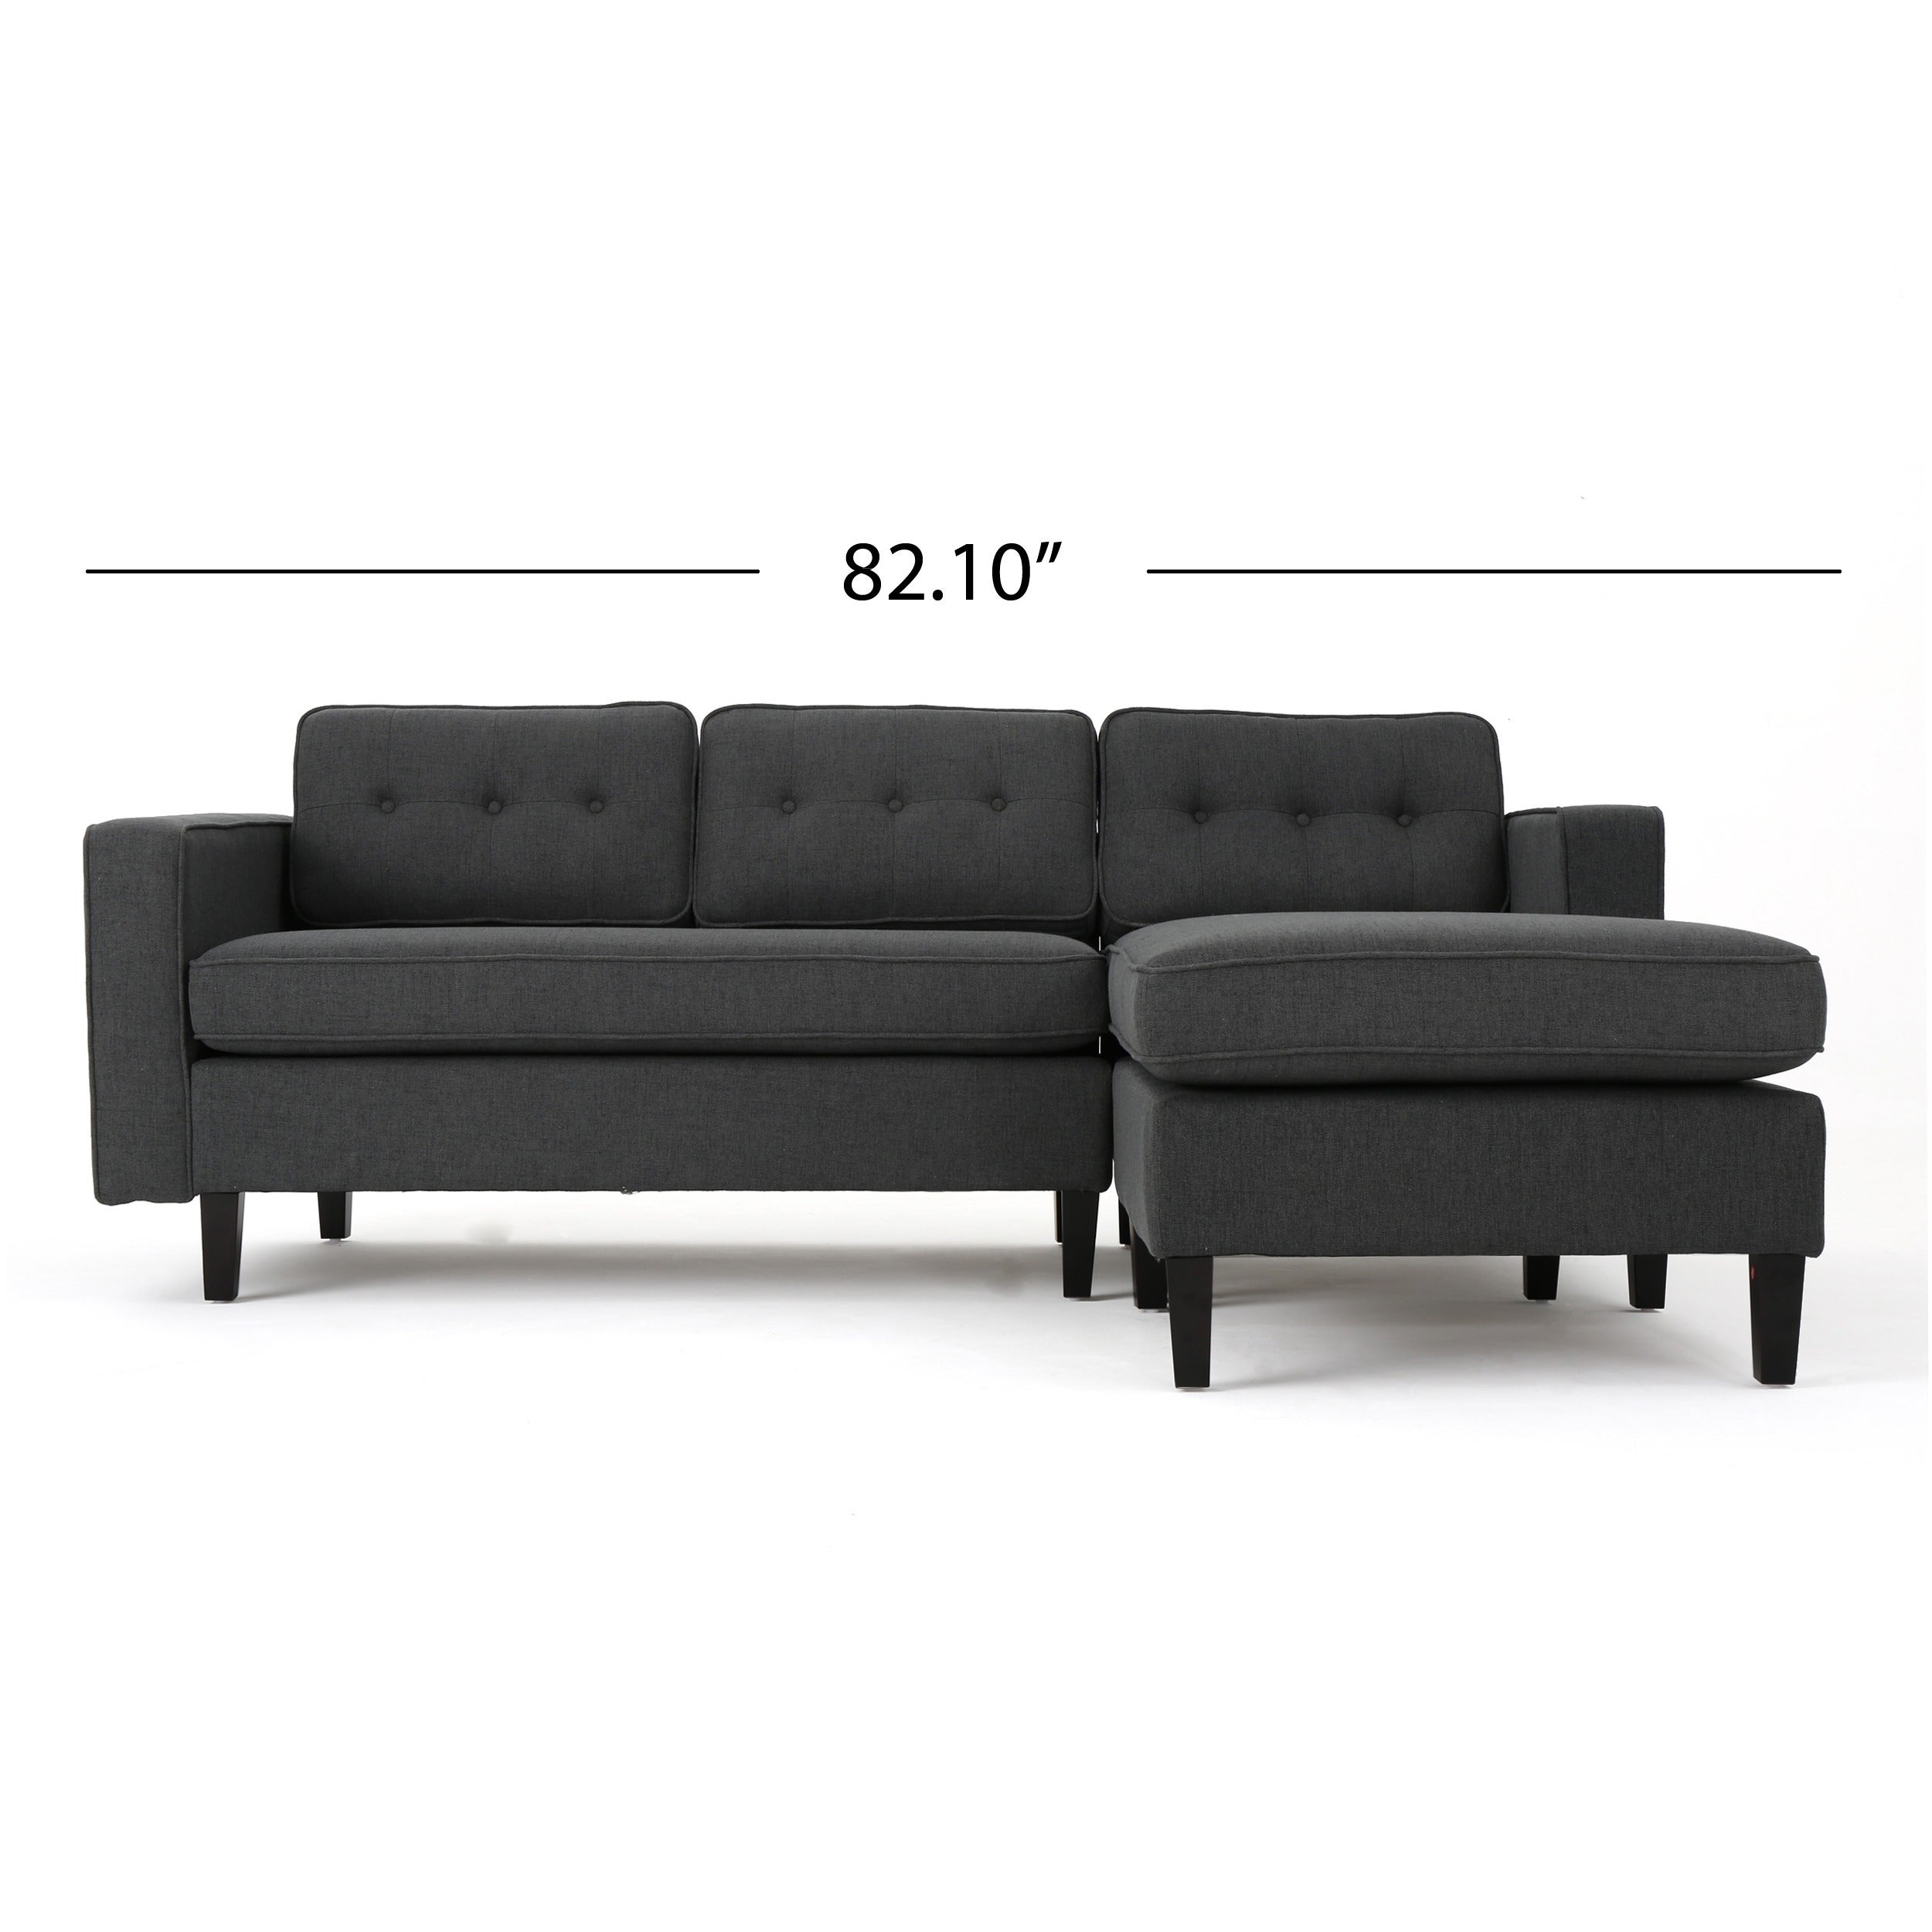 Wilder Mid Century Modern 2 Piece Fabric Chaise Sectional Sofa By Christopher Knight Home On Free Shipping Today 14675119